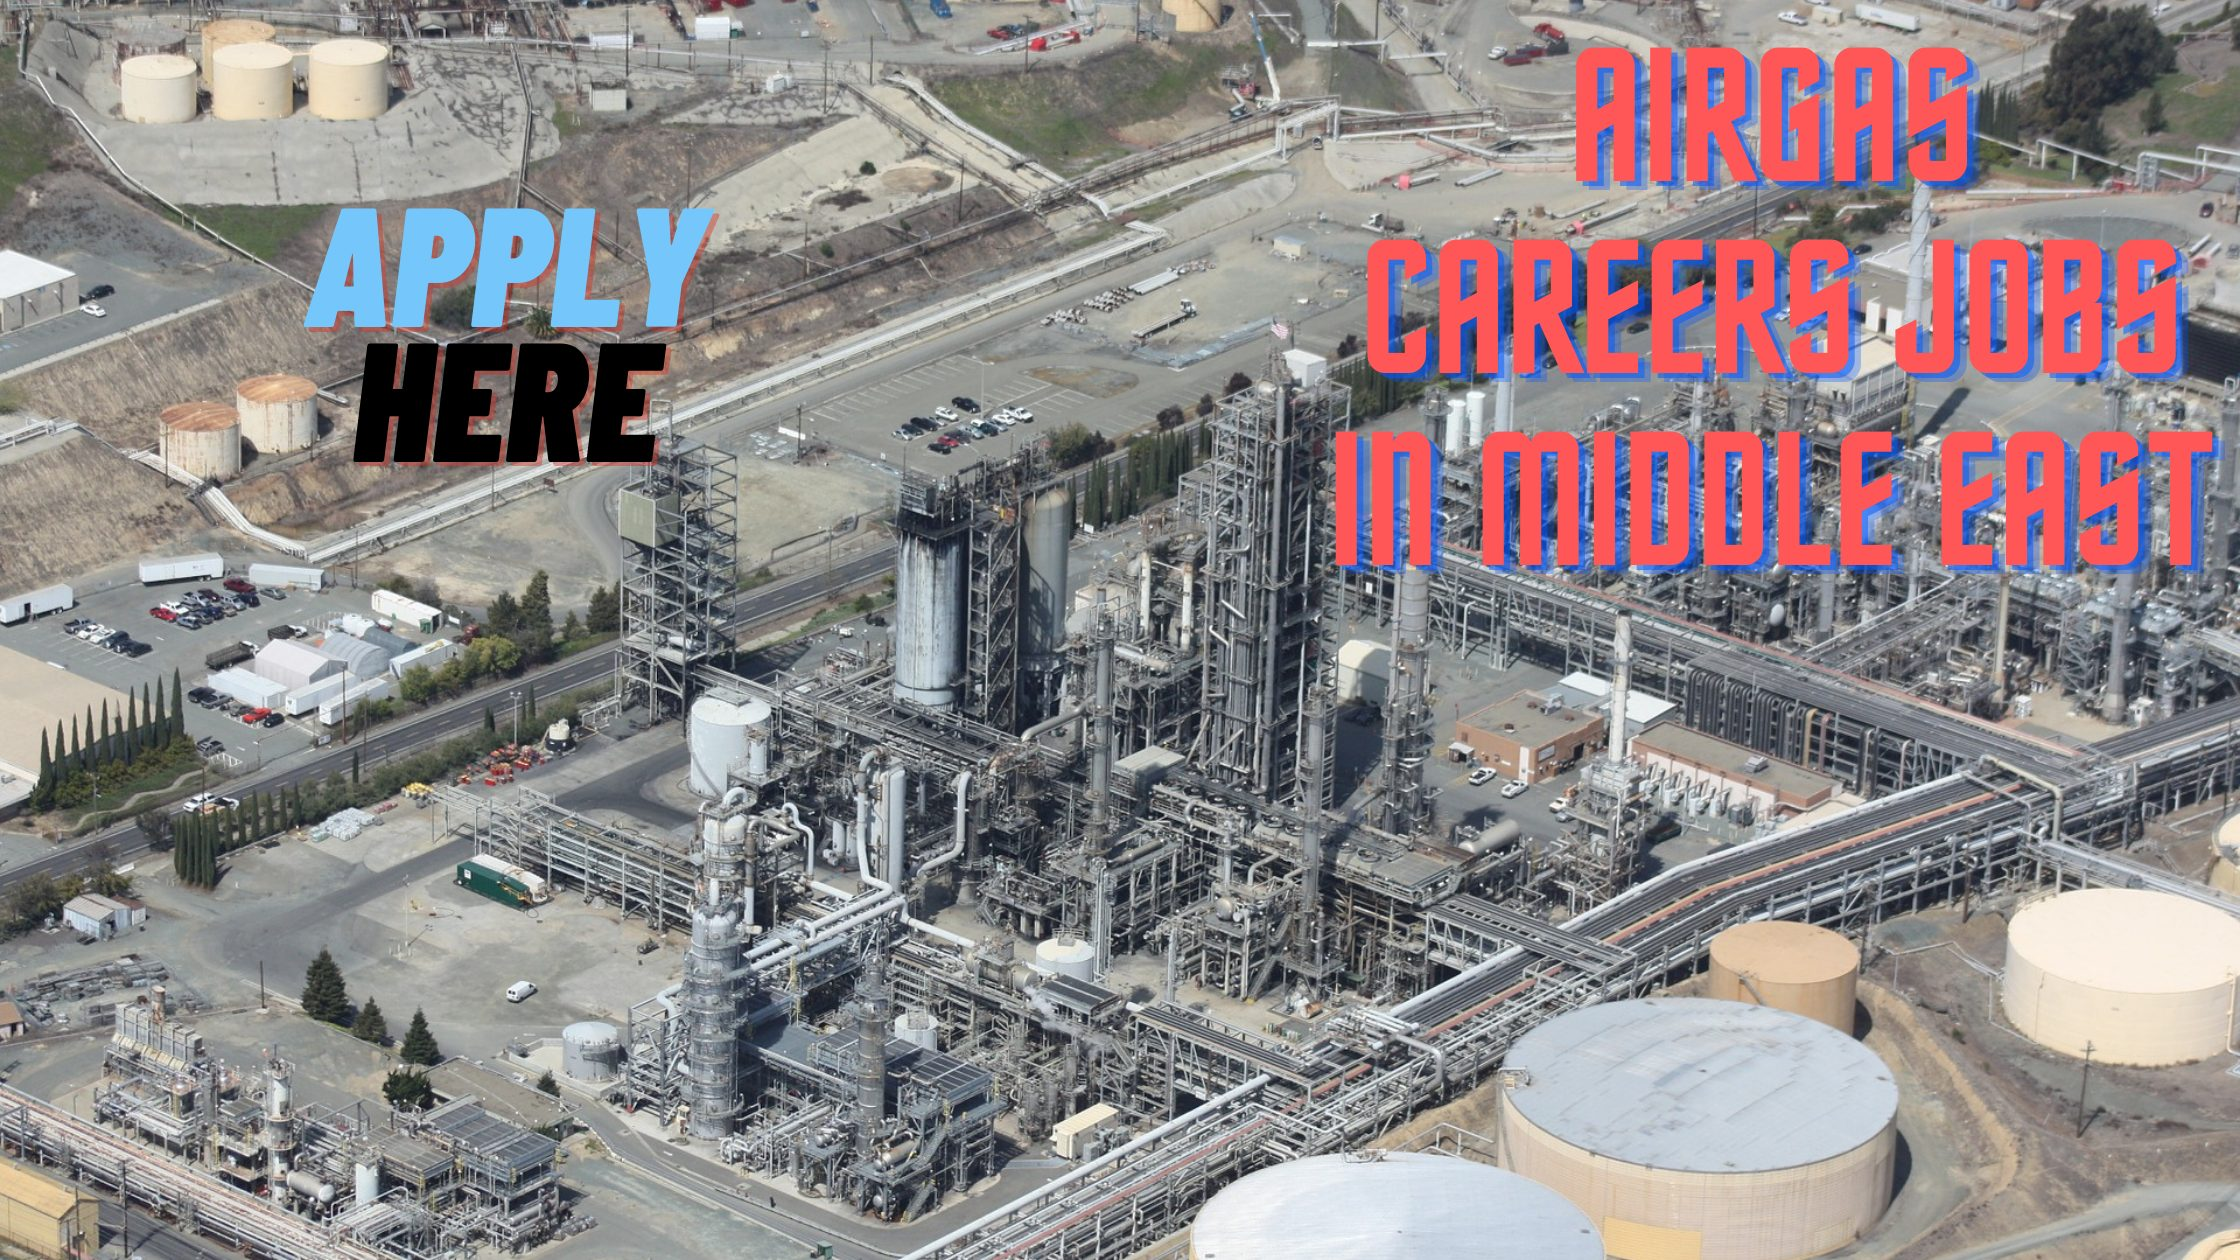 Airgas Careers Jobs in Middle East